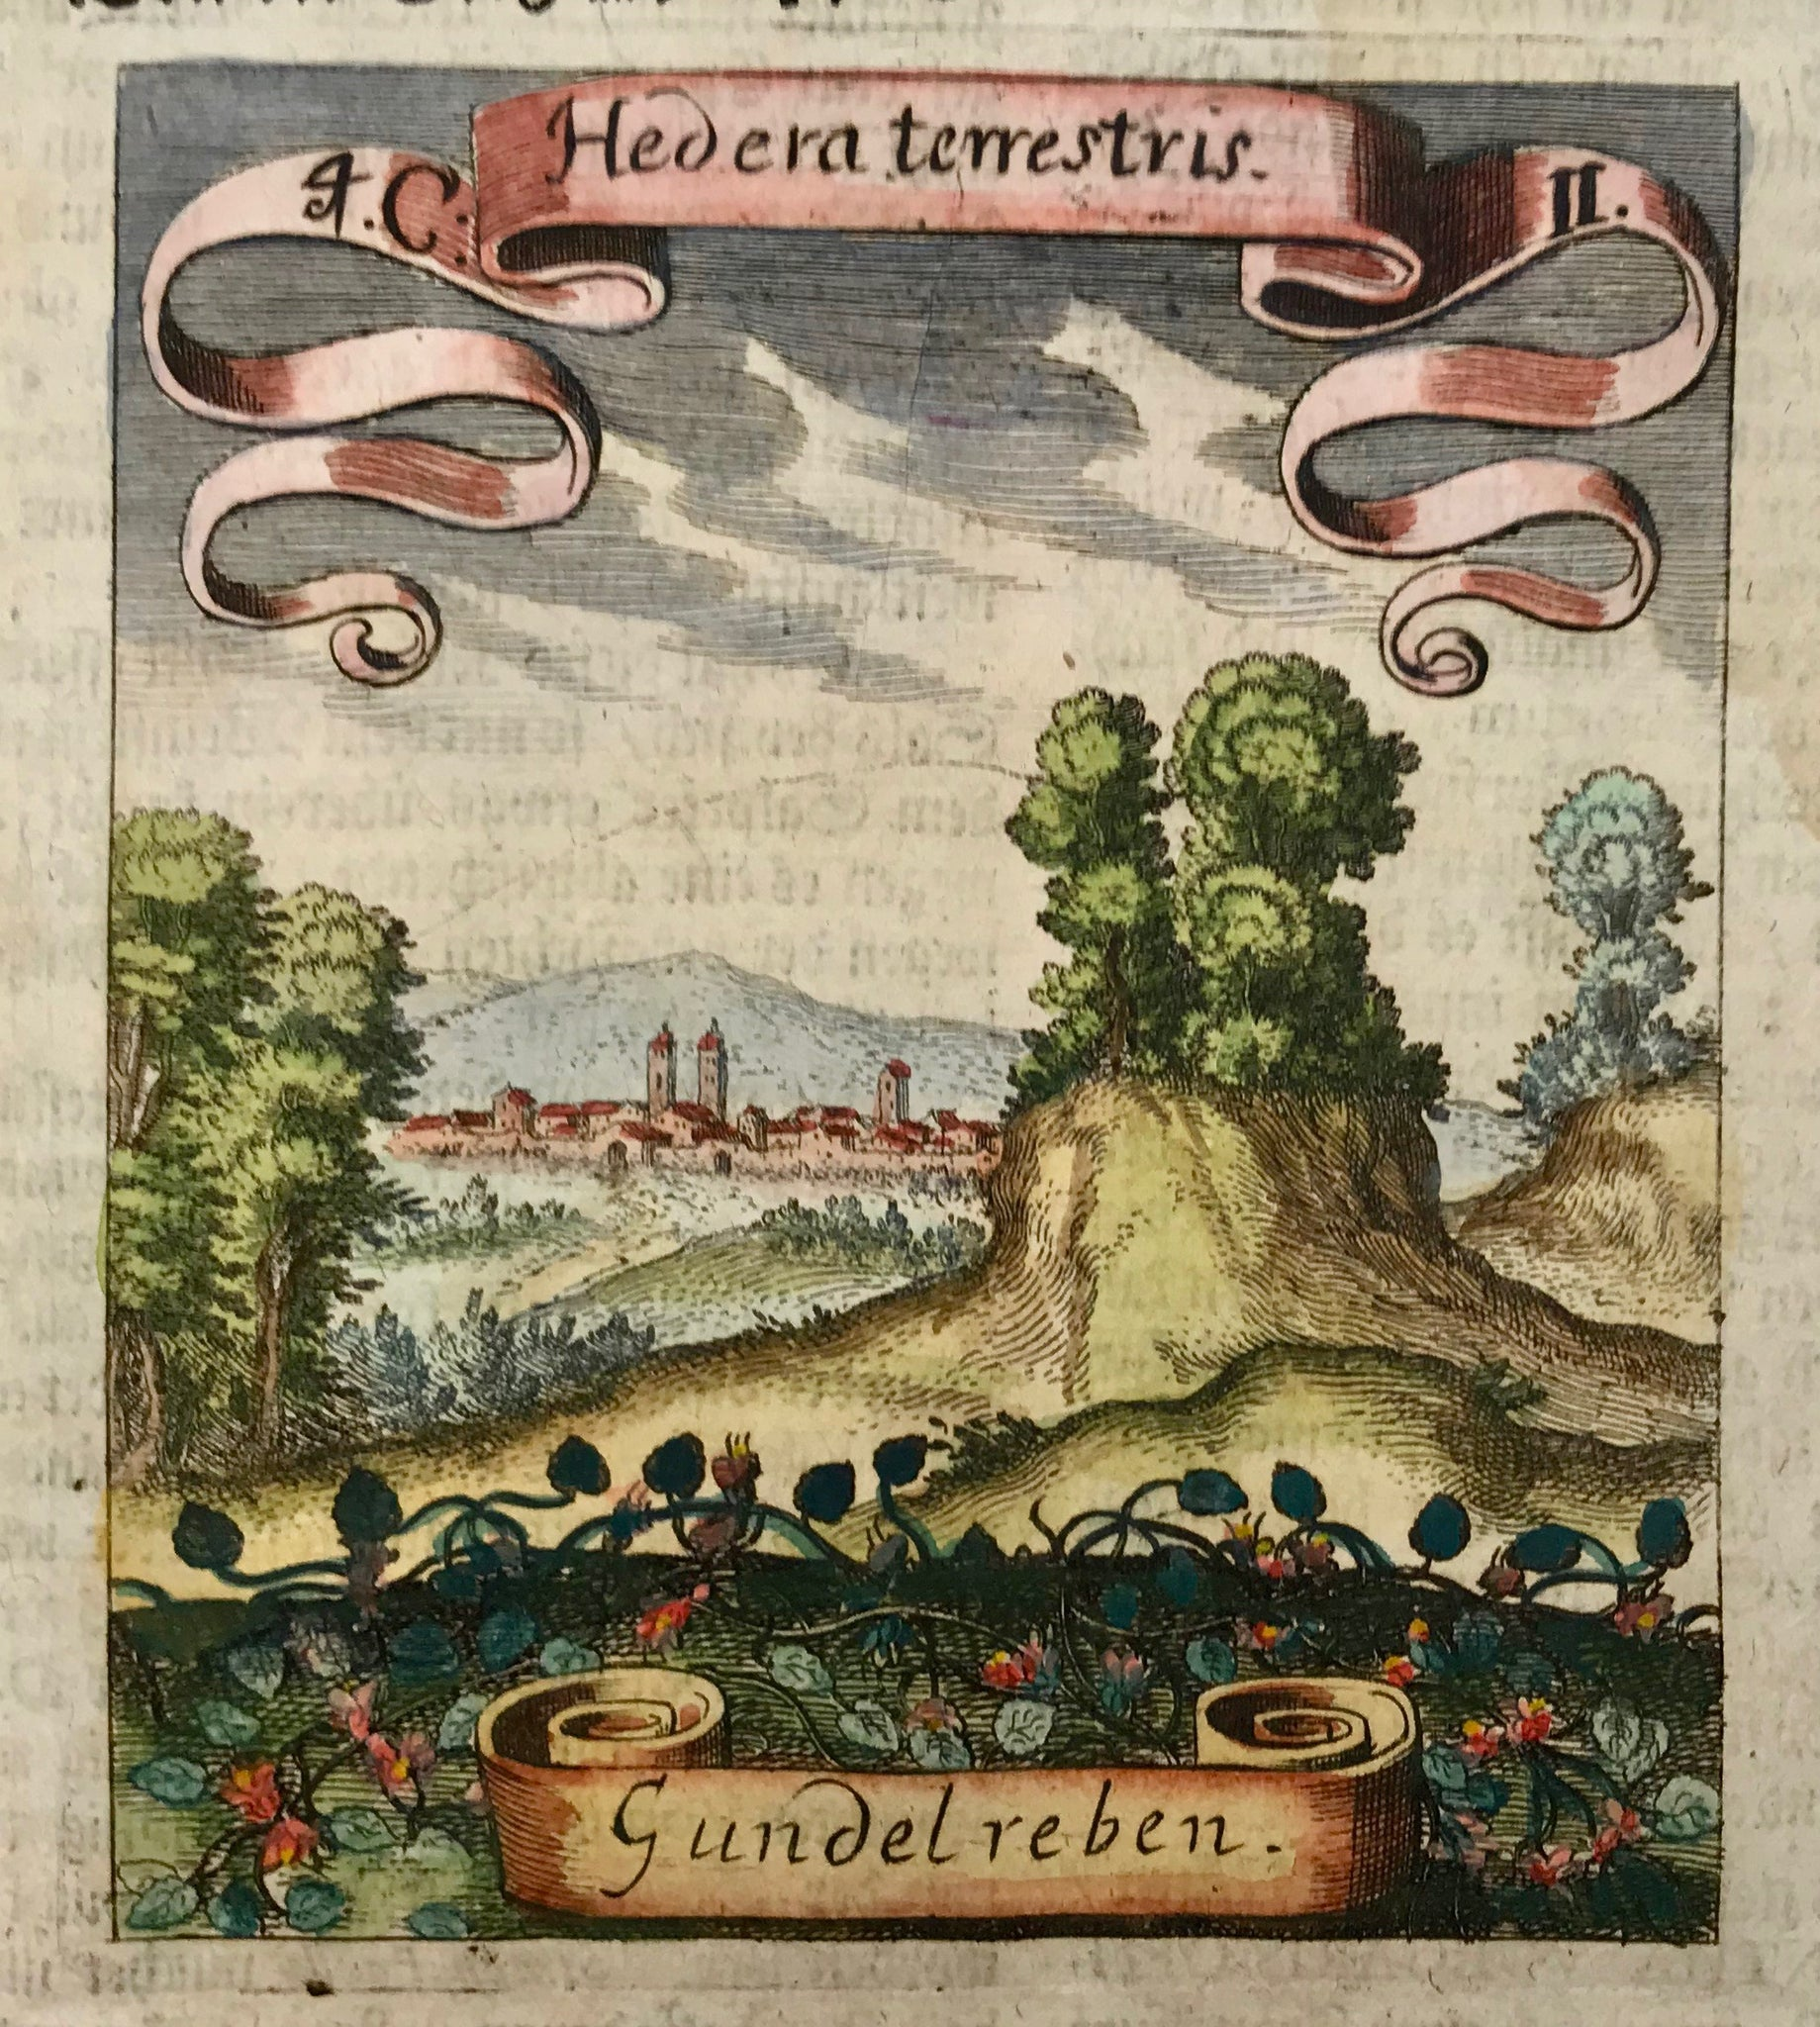 "Hedera terrestris-Gundelreben  Botanical Prints by Matthaeus Merian Matthaeus Merian (1593 Basel - Bad Schwalbach 1650), famous for his ""Topographies"" and his ""Theatrum Europeum"" was also a very distinguished engraver and publisher of many other varieties of books and prints."